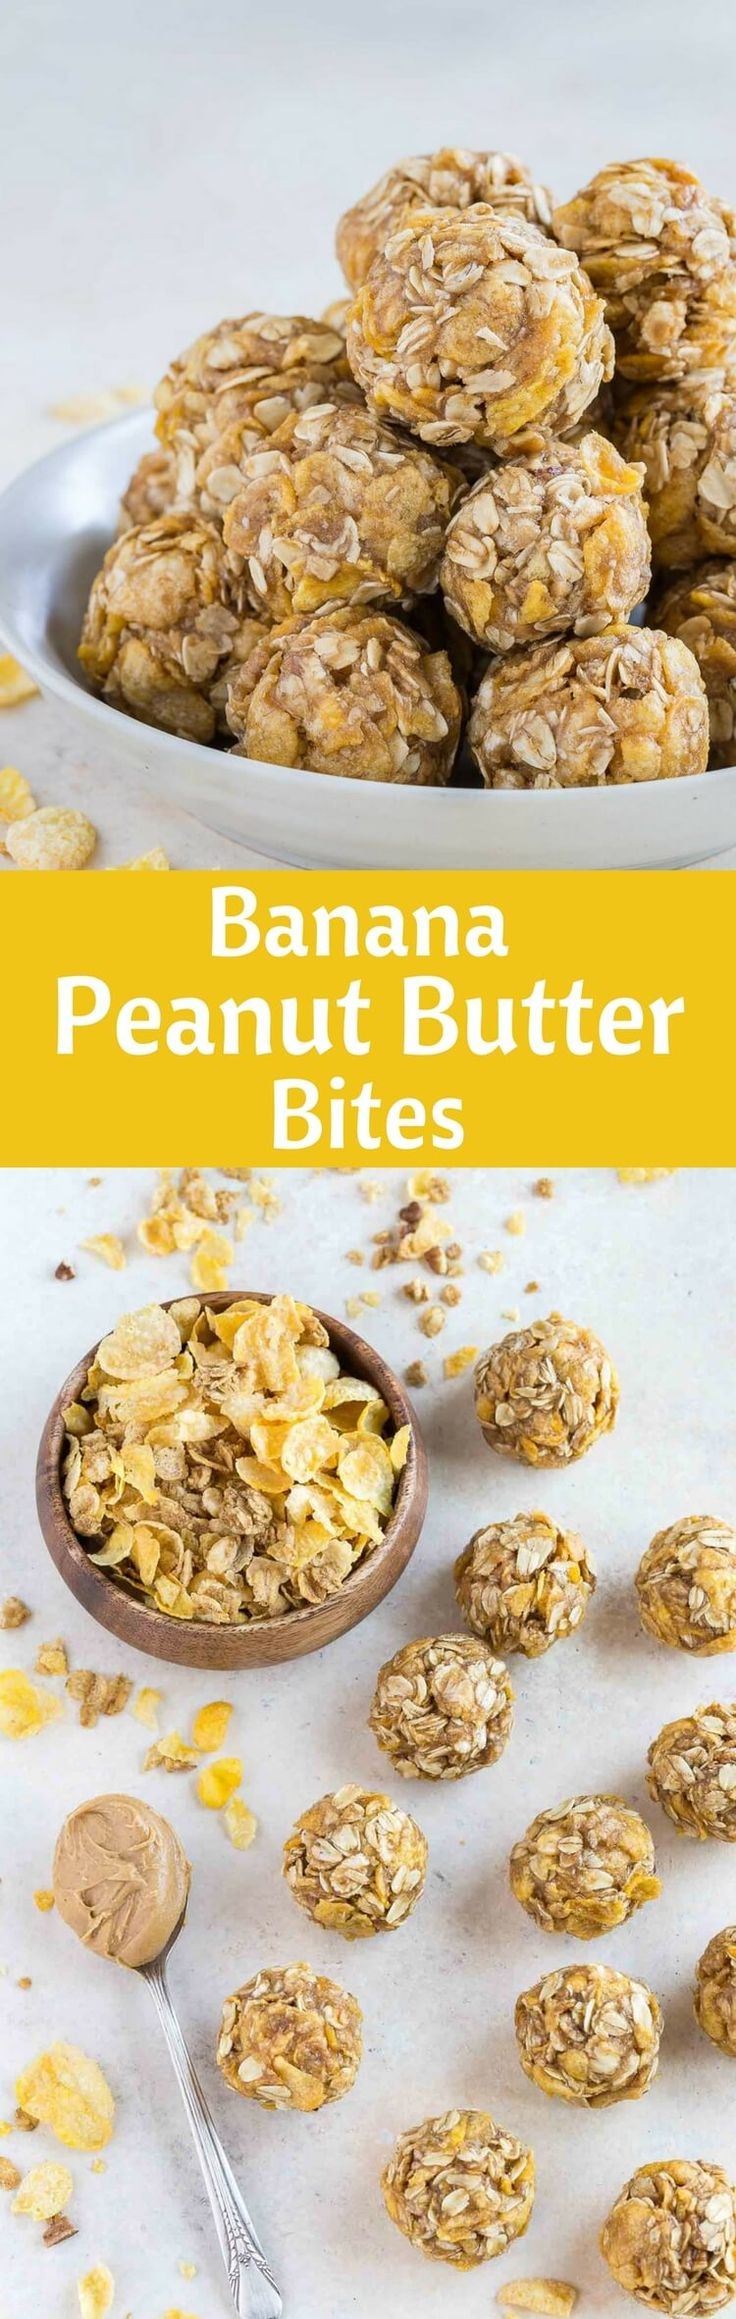 Banana Peanut Butter Snack Bites are deliciously satisfying! These little snack bites are packed full of flavor. Even better, you can freeze them! via @introvertbaker